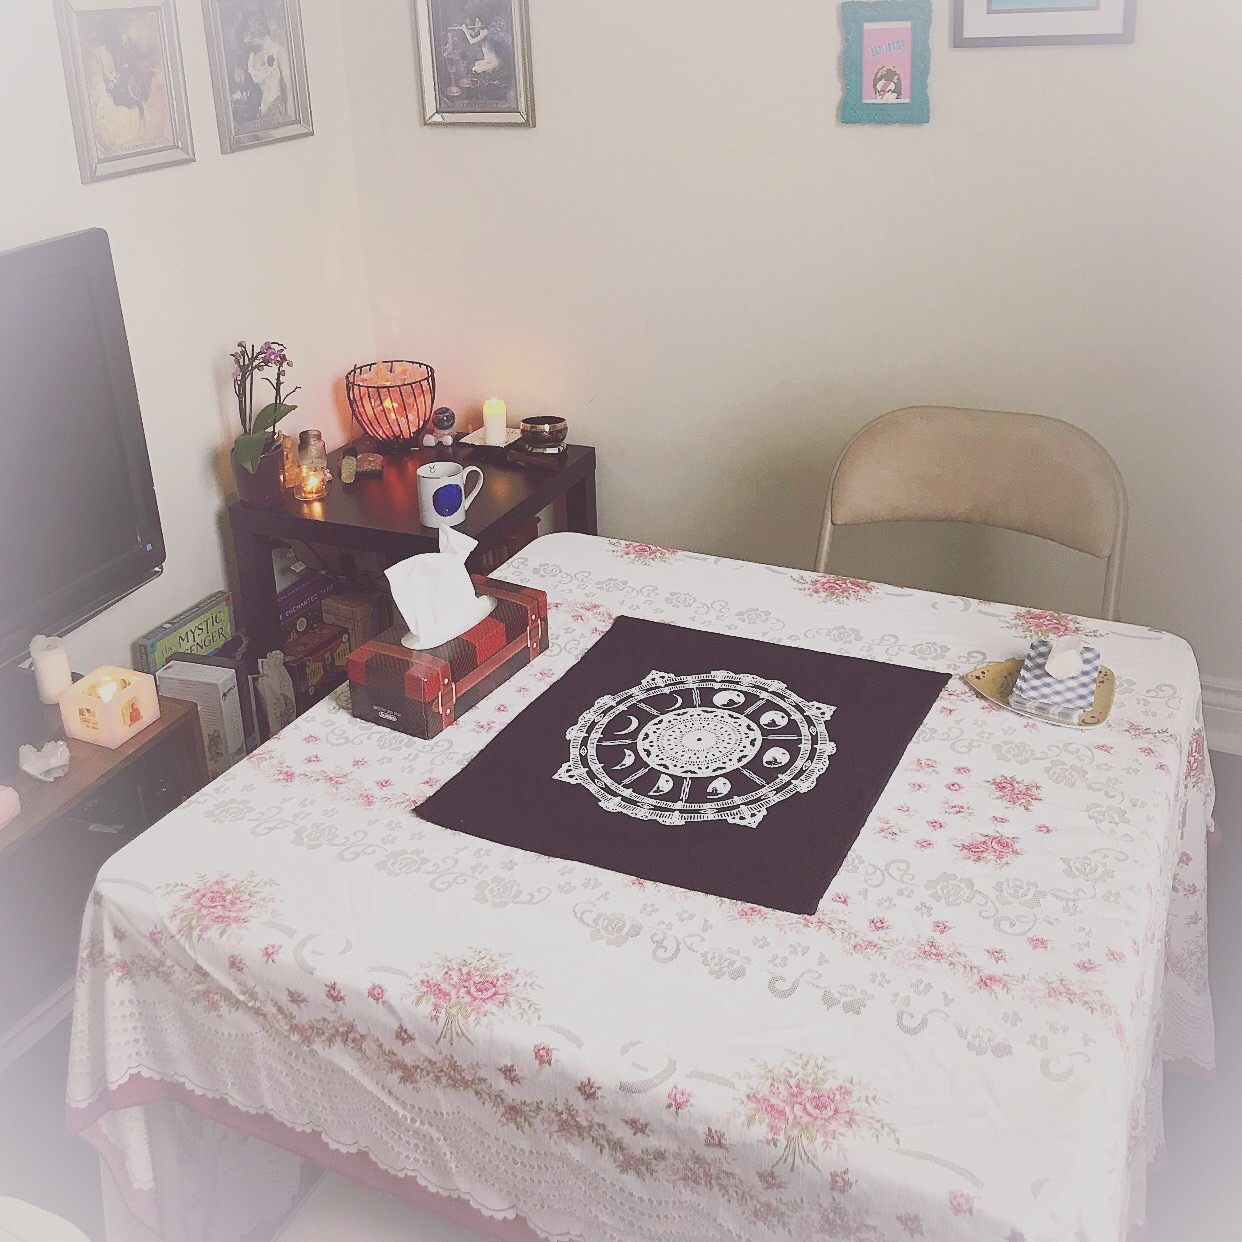 Online & In-Person - I offer readings by E-mail & Skype, as well as in-person at my in-home studio located in Burlington, Ontario, Canada. No matter where you are in the world, I offer affordable, accessible guidance through Tarot.